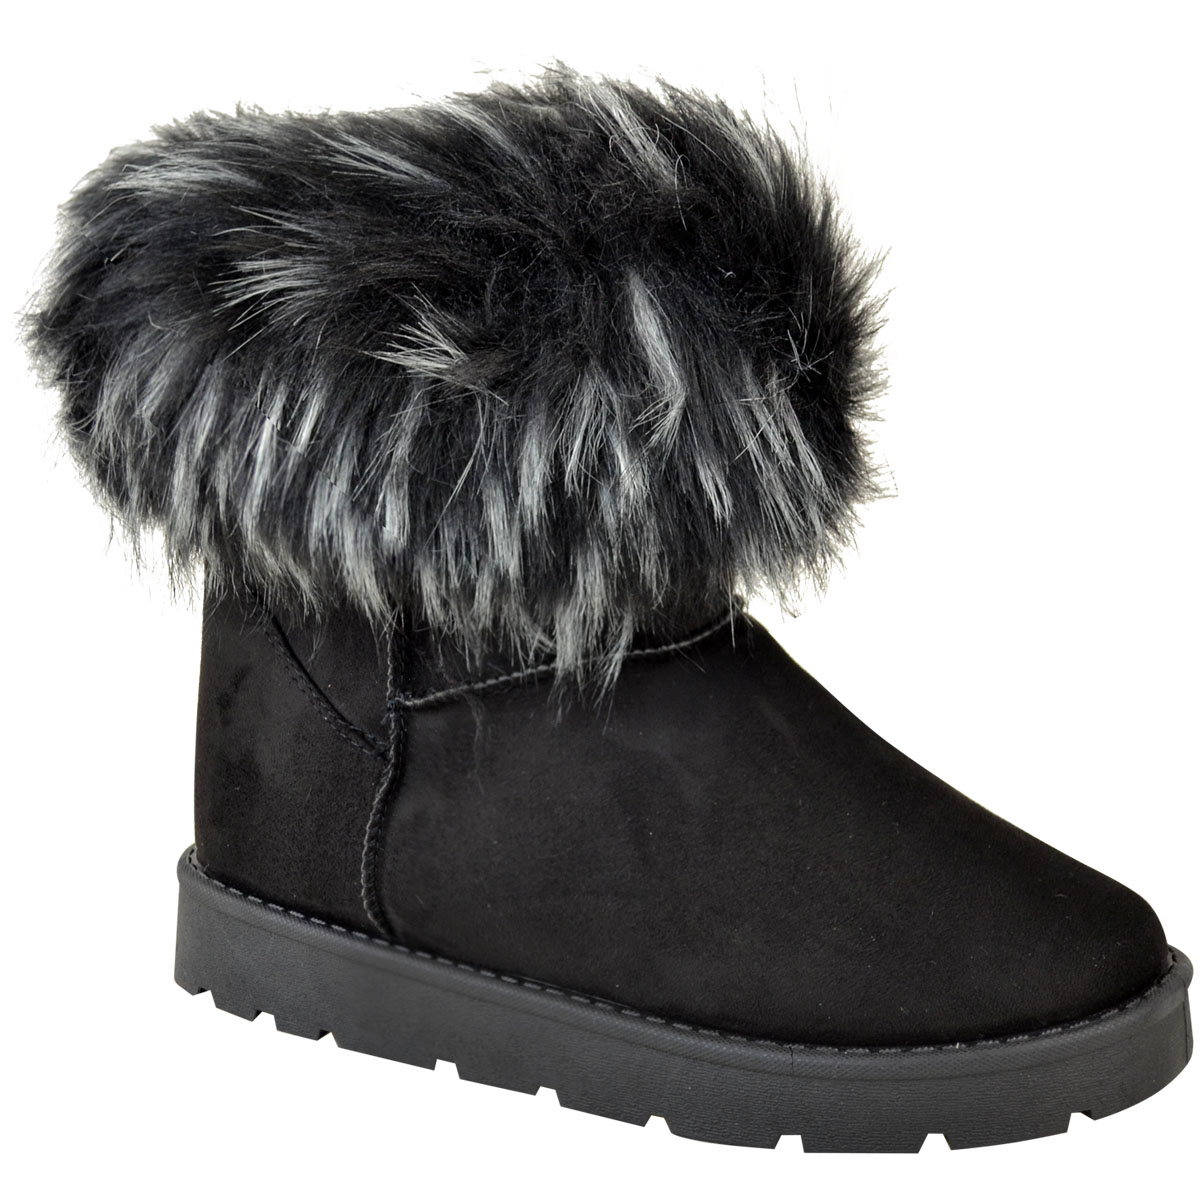 Womens Ladies Flat Low Wedge Faux Fur Winter Anlke Boots Warm Fleece Size New